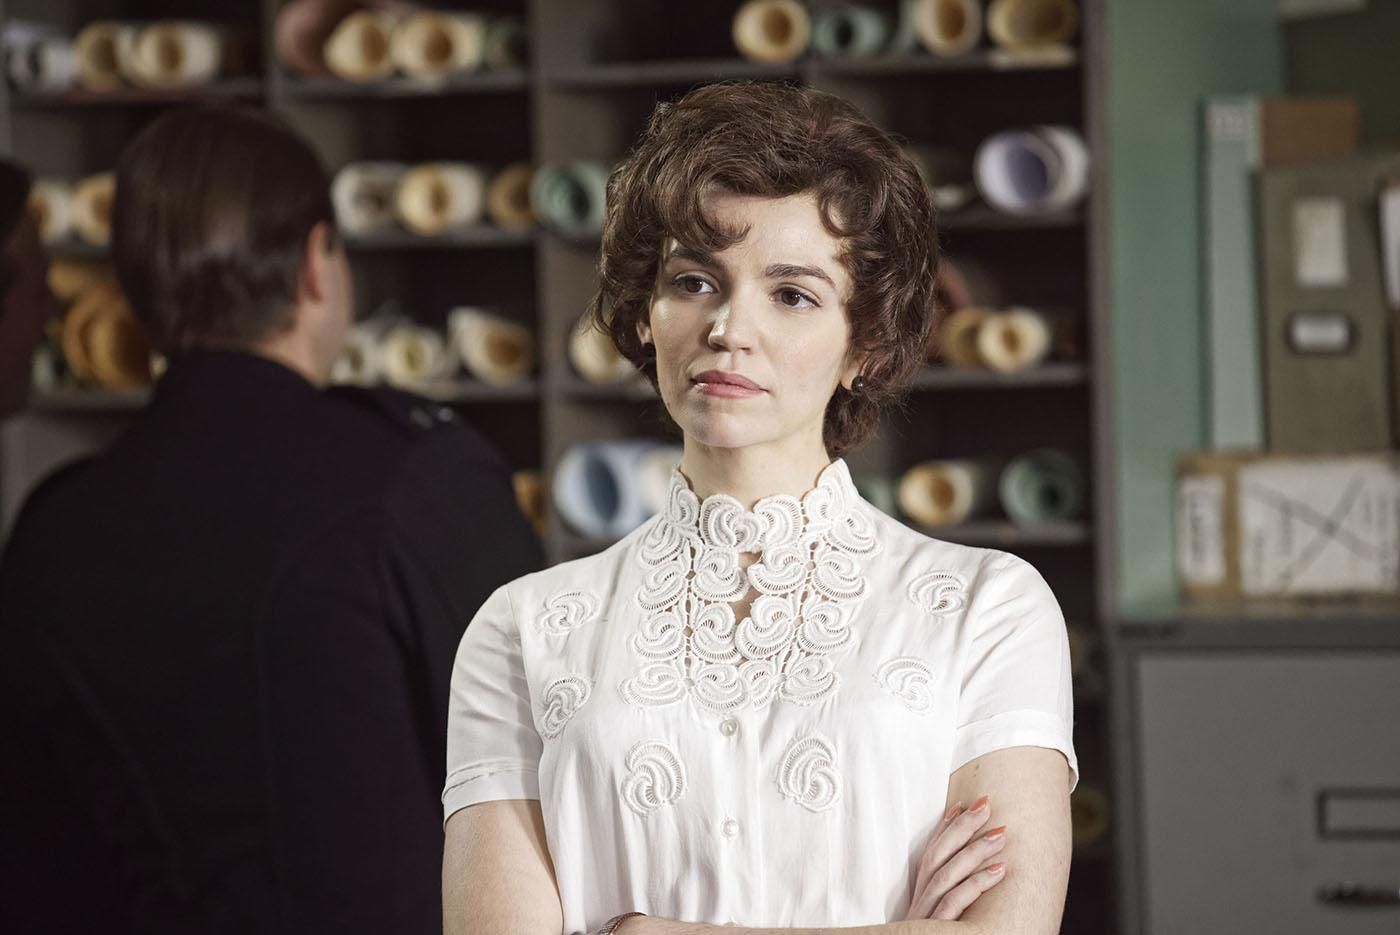 Seline Hizli as Margaret in Grantchester. Photo: ITV for MASTERPIECE